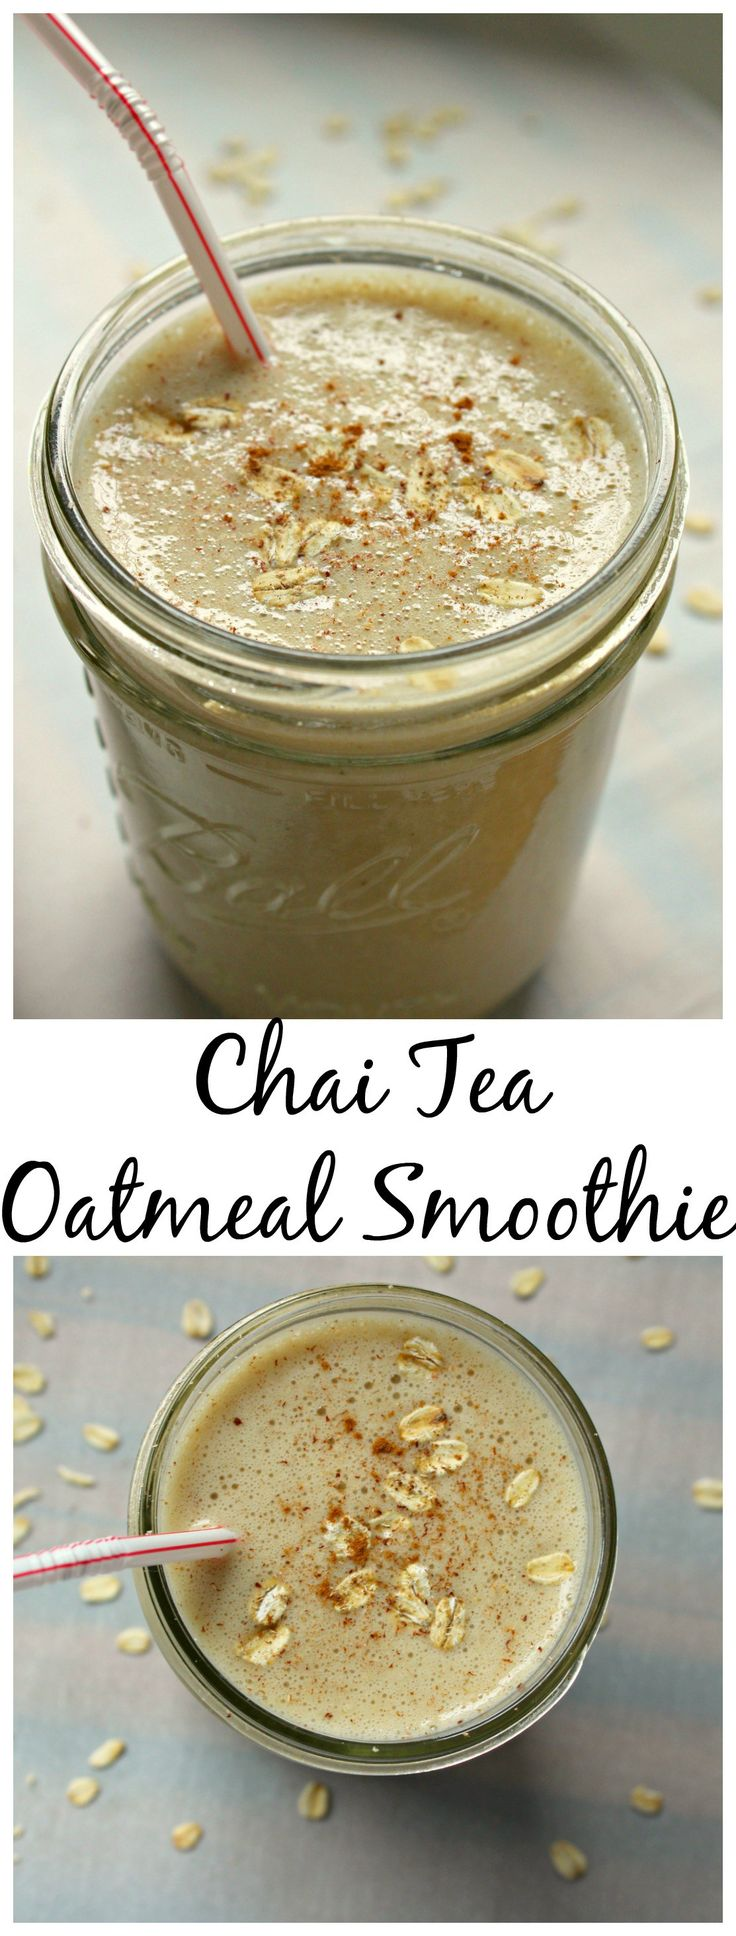 Chai Tea Oatmeal Smoothie: The Perfect breakfast on the go! The right amount of energy and refreshing! | smoothie | oatmeal smoothie | gluten free | gluten free smoothie | smootie recipe | chai tea smoothie | chai tea oatmeal smoothie | chai tea |